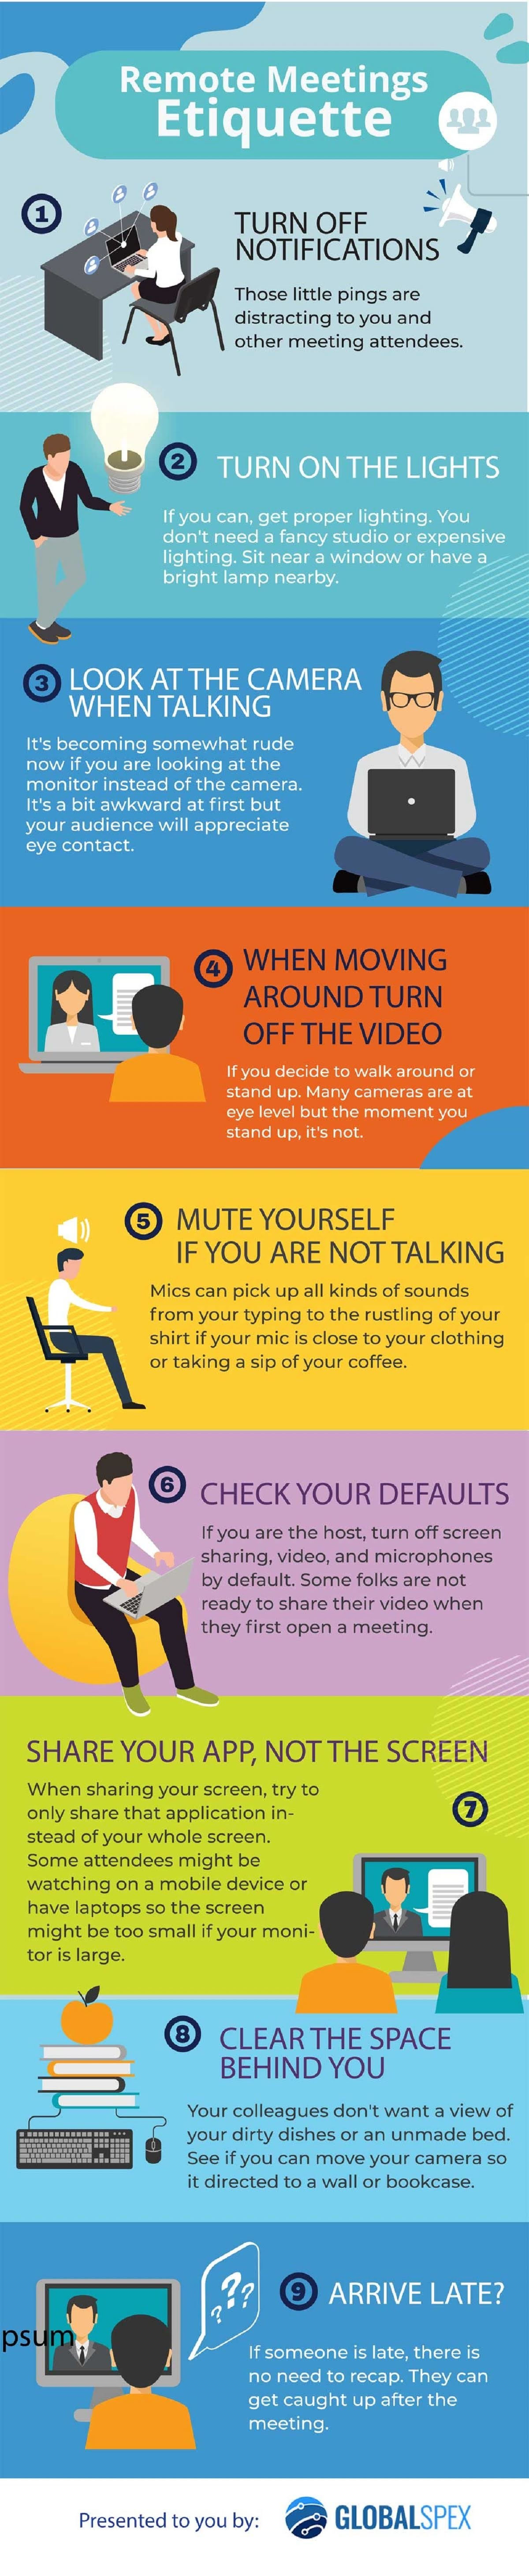 zoom-virtual-meeting-etiquette-infographic